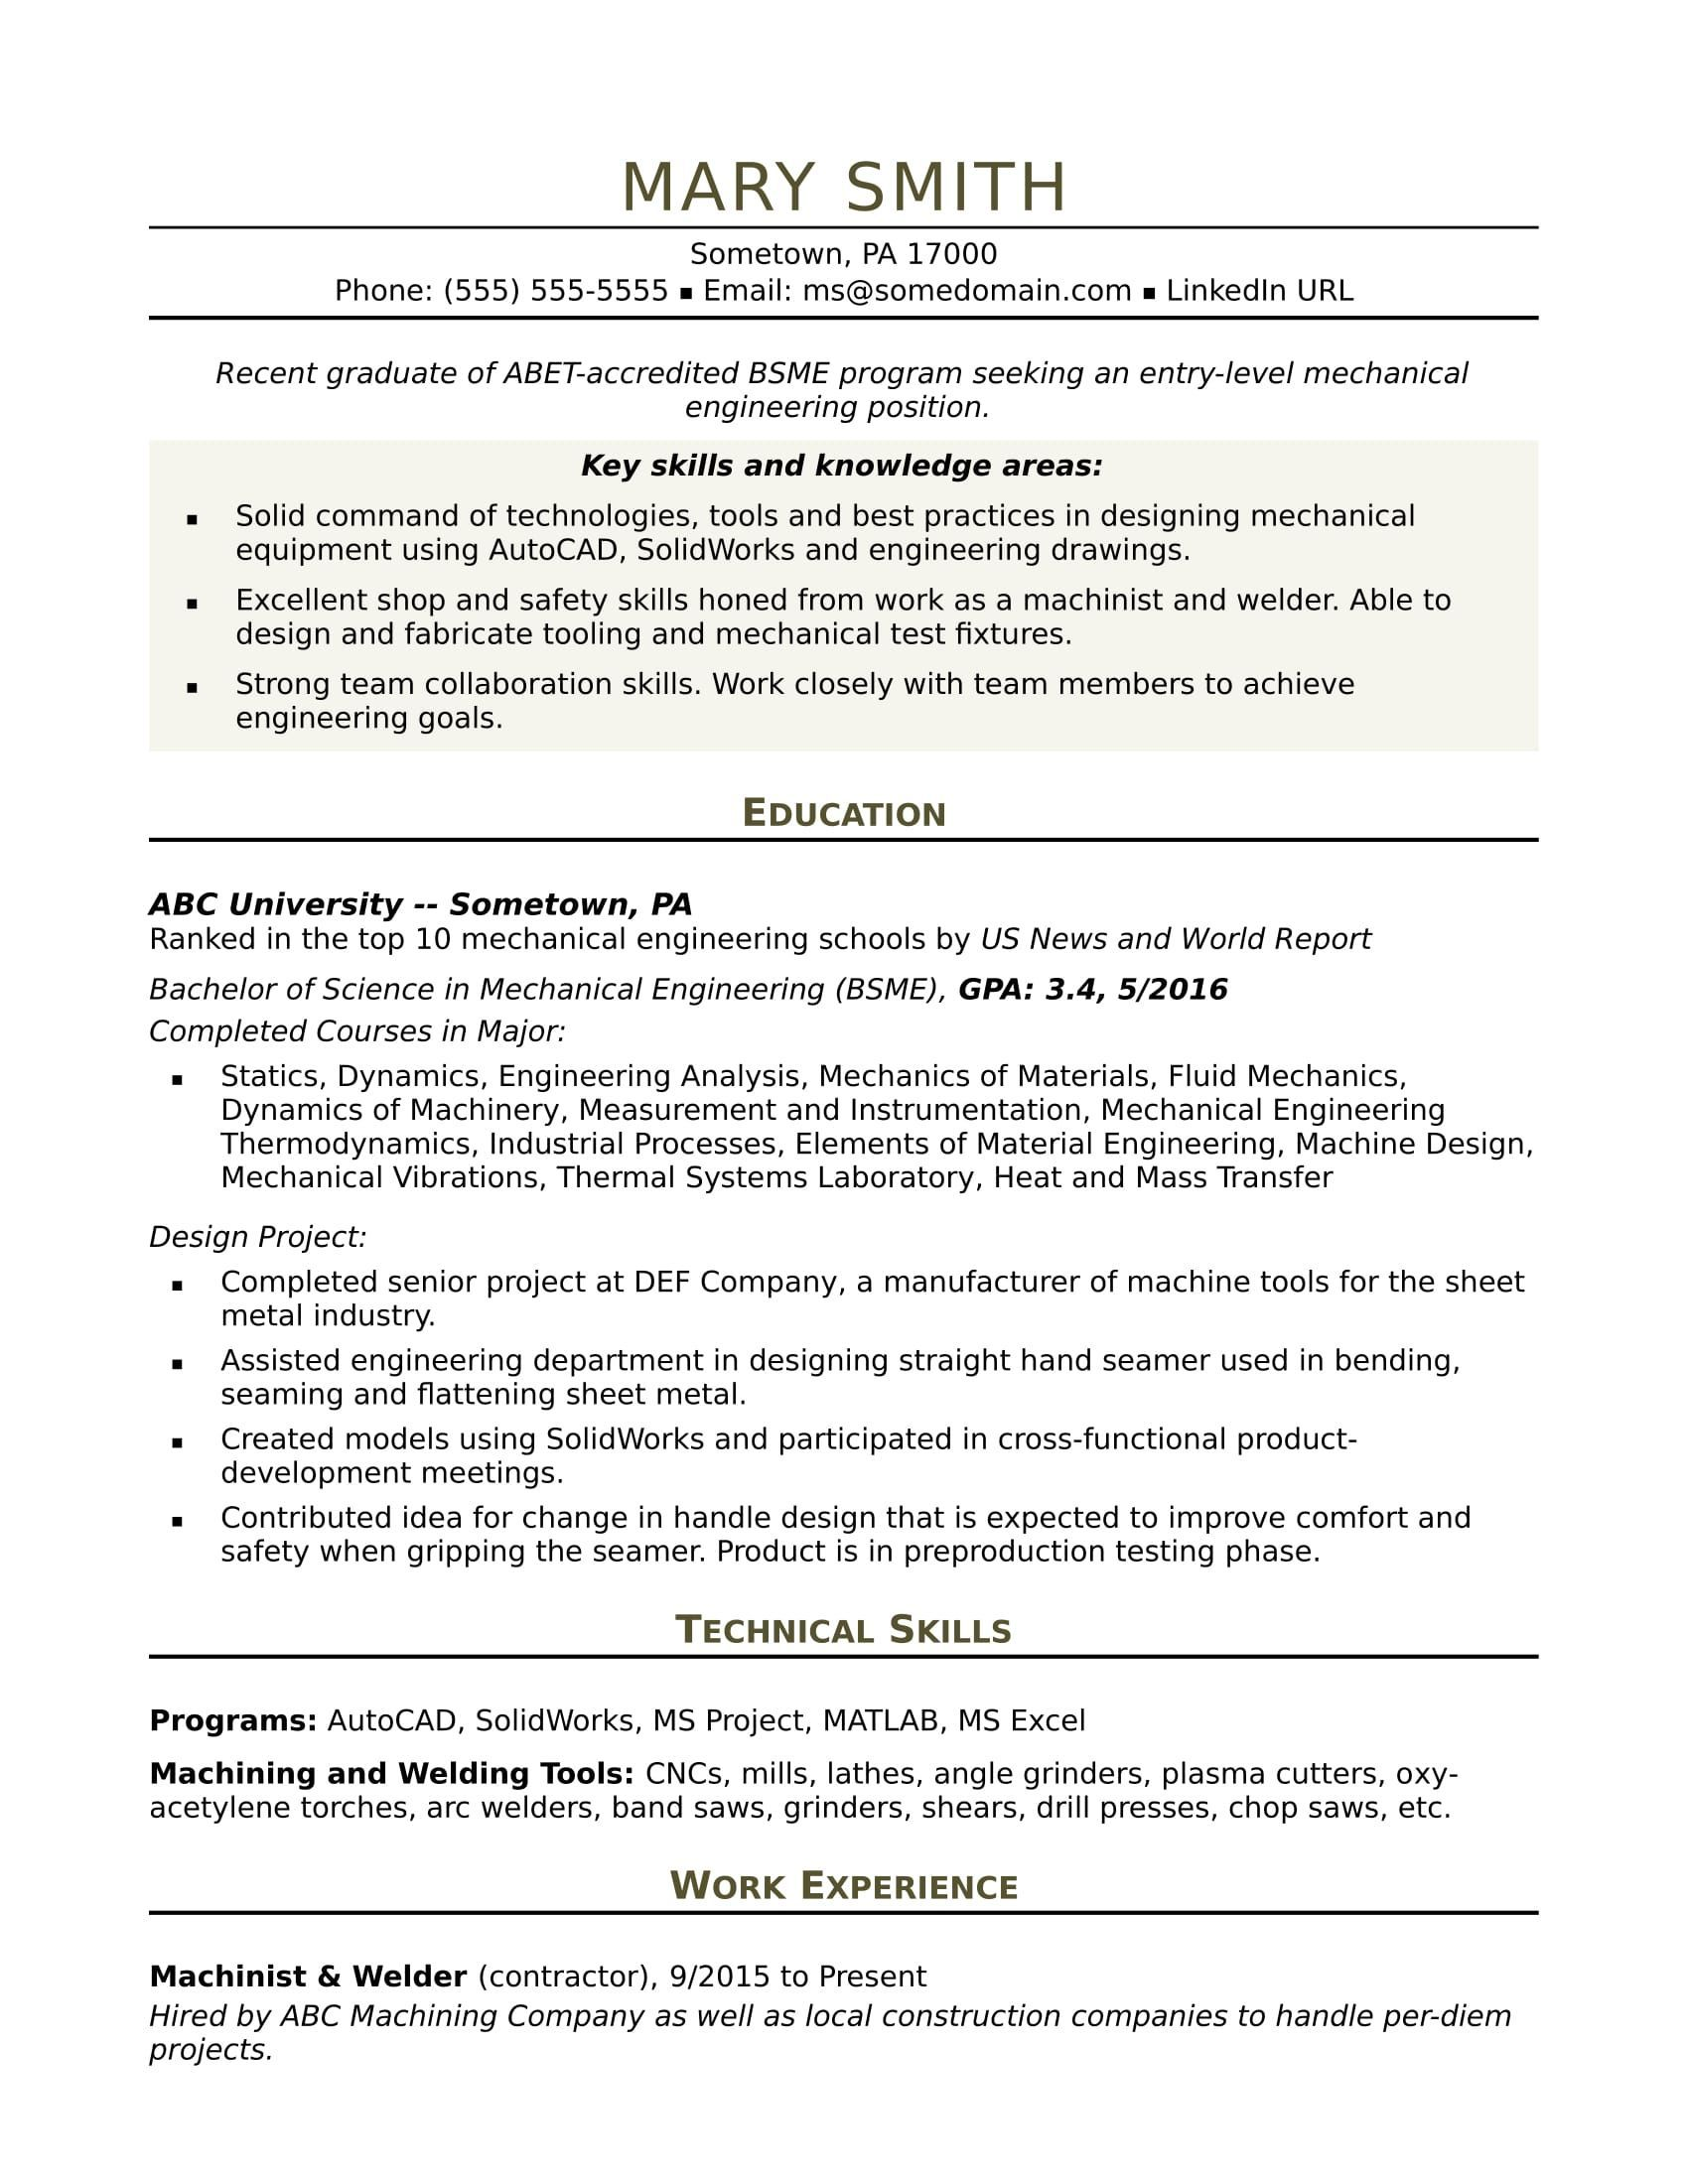 Mechanical Engineering Sample Resume Sample Resume For An Entrylevel Mechanical Engineer .